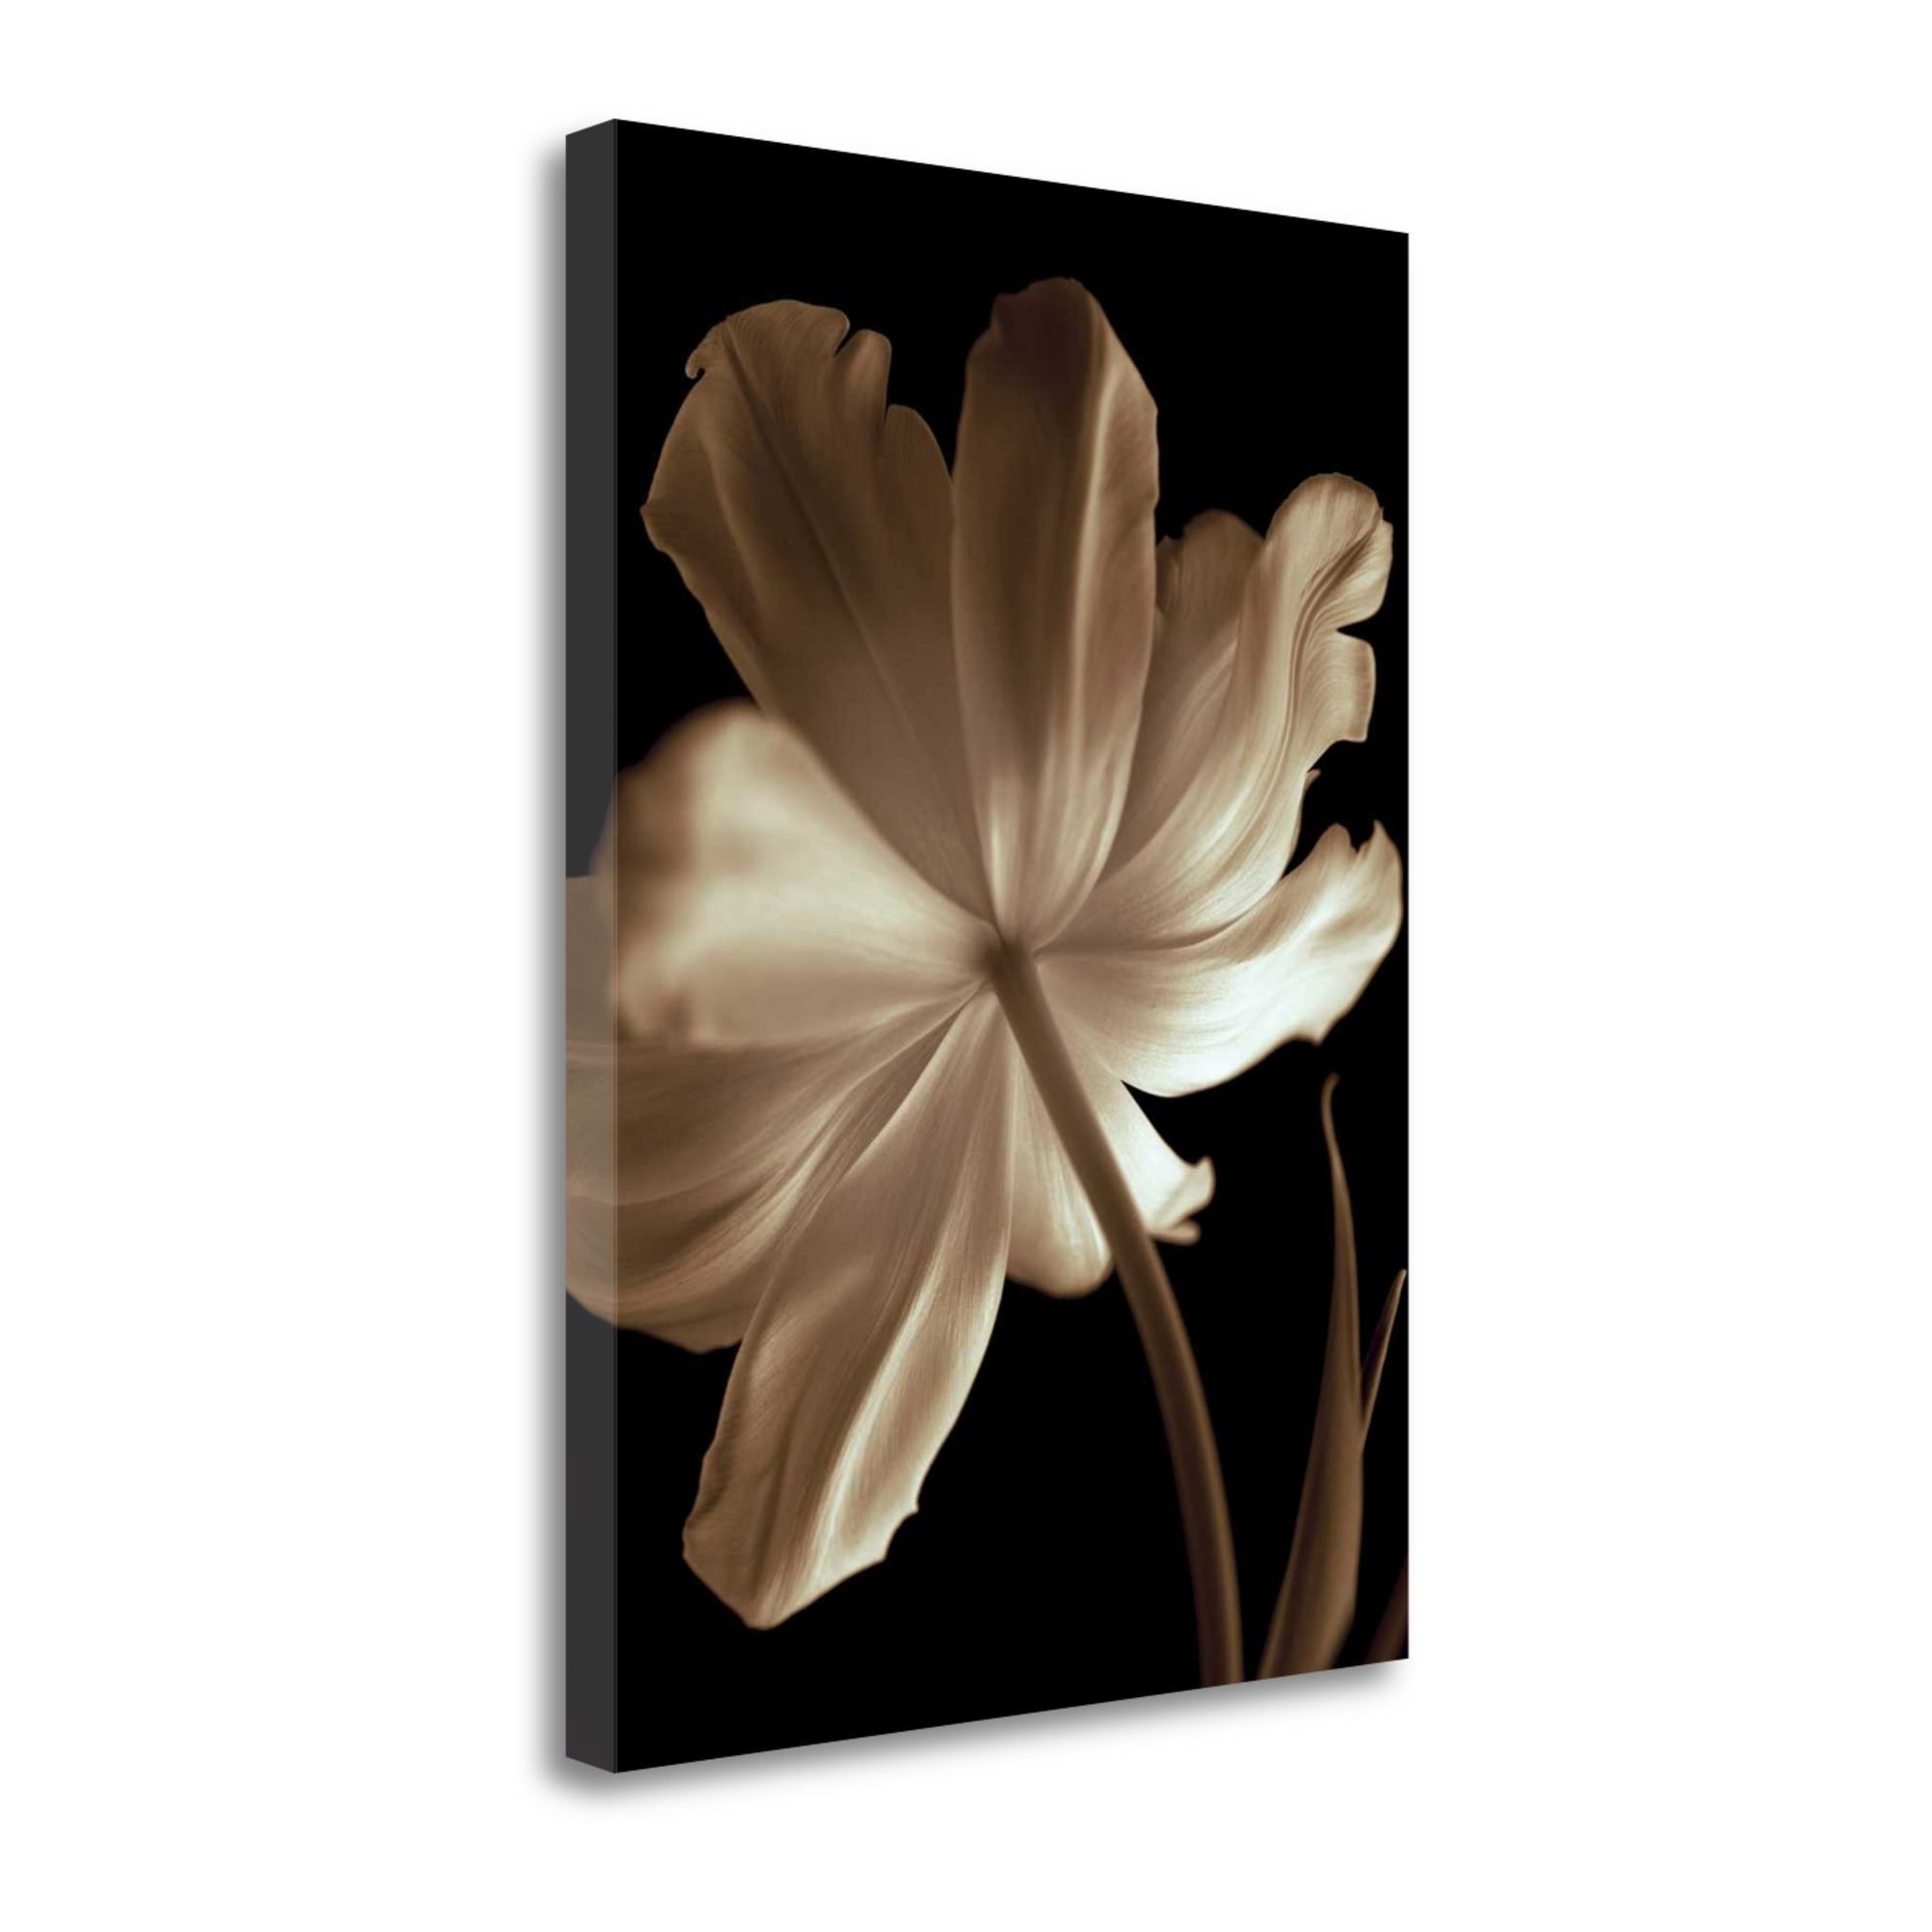 "Champagne Tulip II By Charles Britt, 25"" x 33\"" Fine Art Giclee Print on Gallery Wrap Canvas, Ready to Hang"